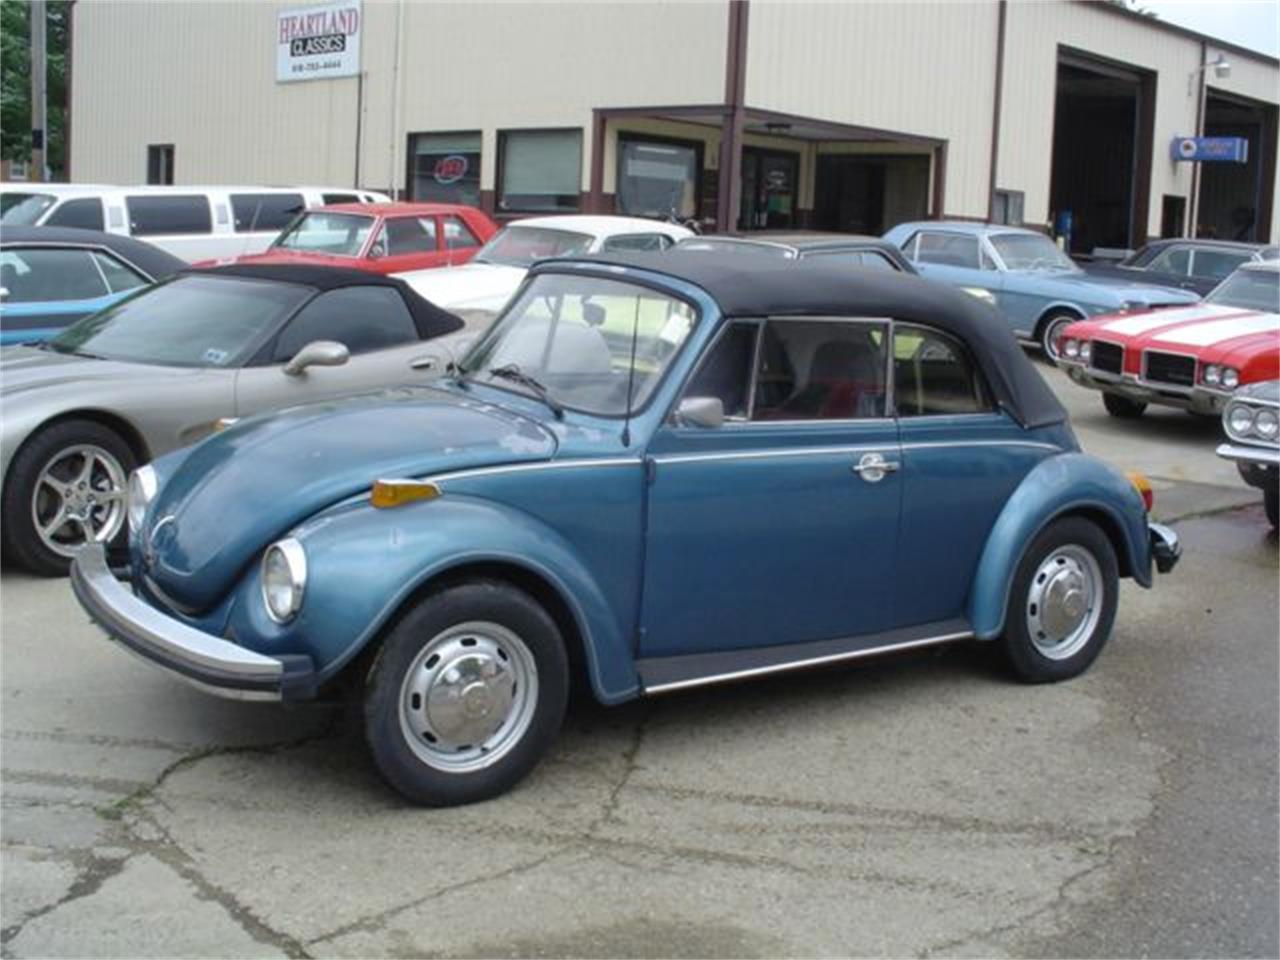 Large Picture of 1974 Beetle located in Illinois - $7,995.00 Offered by Heartland Classics - LNZ3